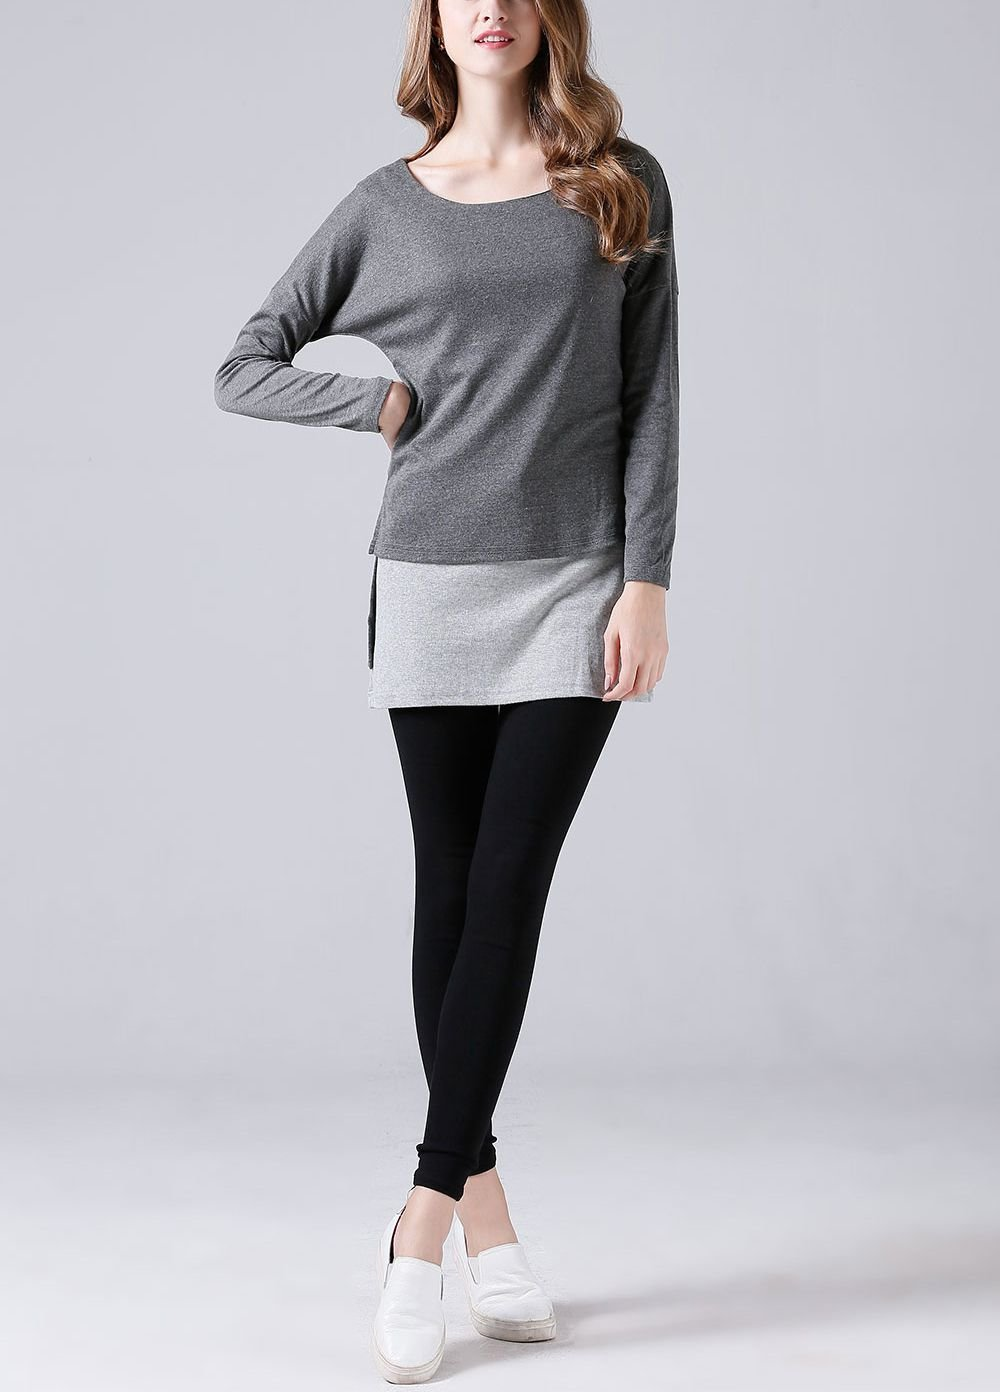 Layered-Look Tee Top